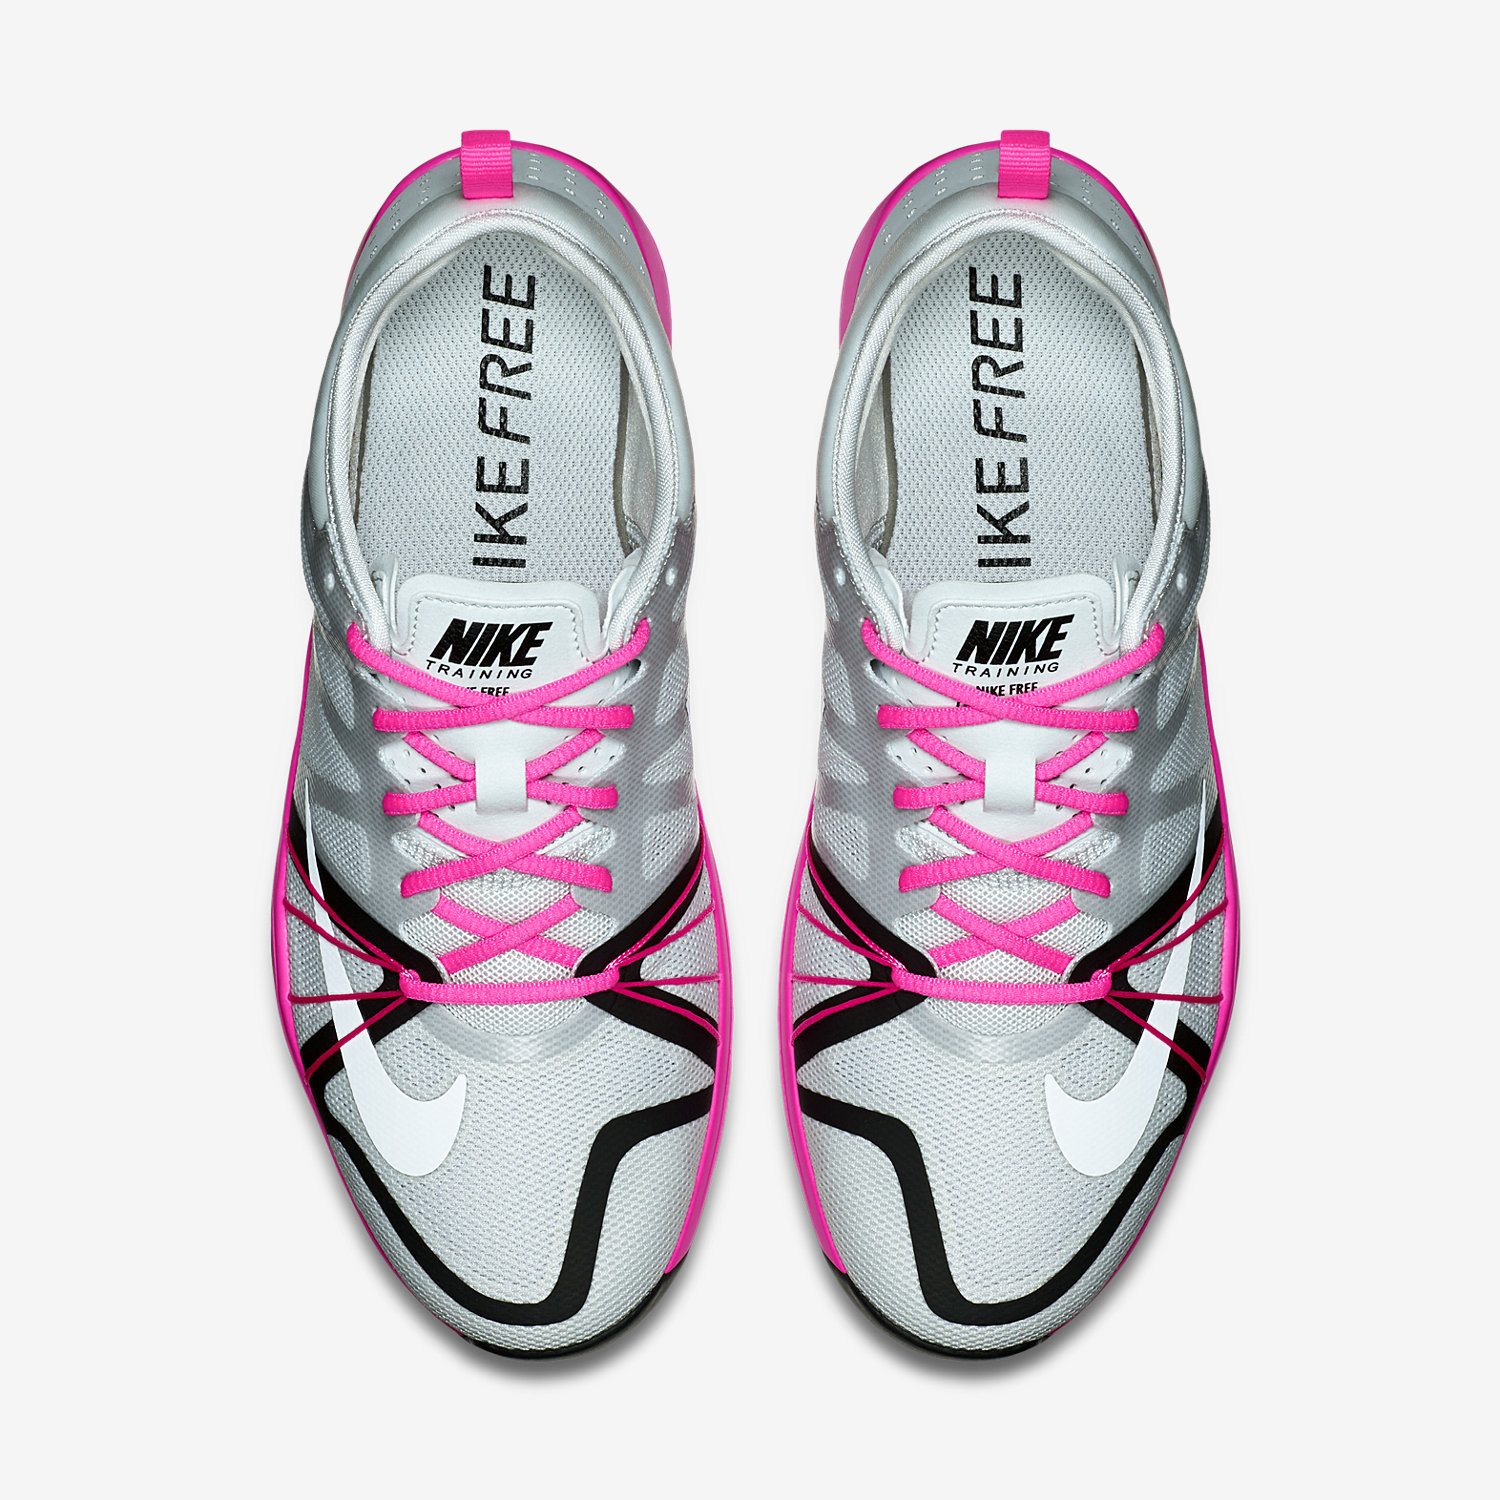 nike free cross complete pink